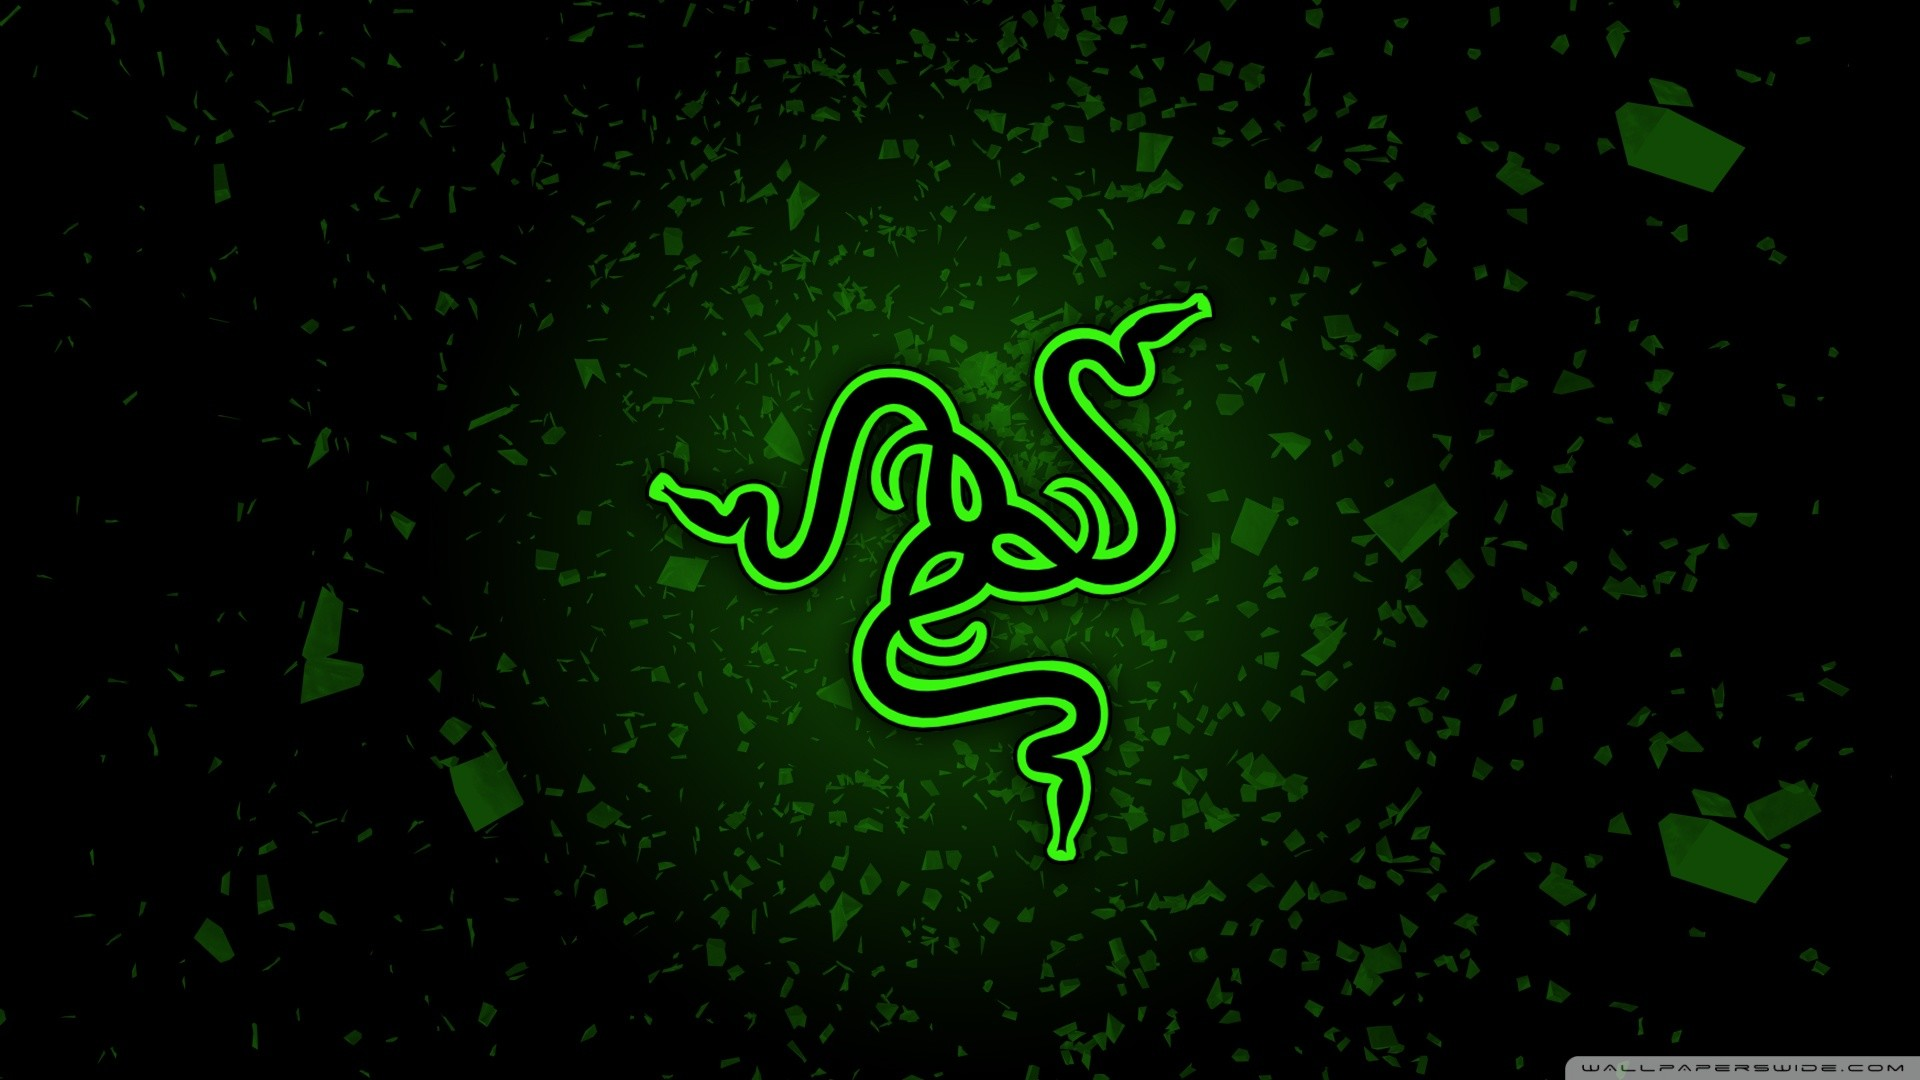 1920x1080 Razer 1920x1080 wallpaper jpg 263548